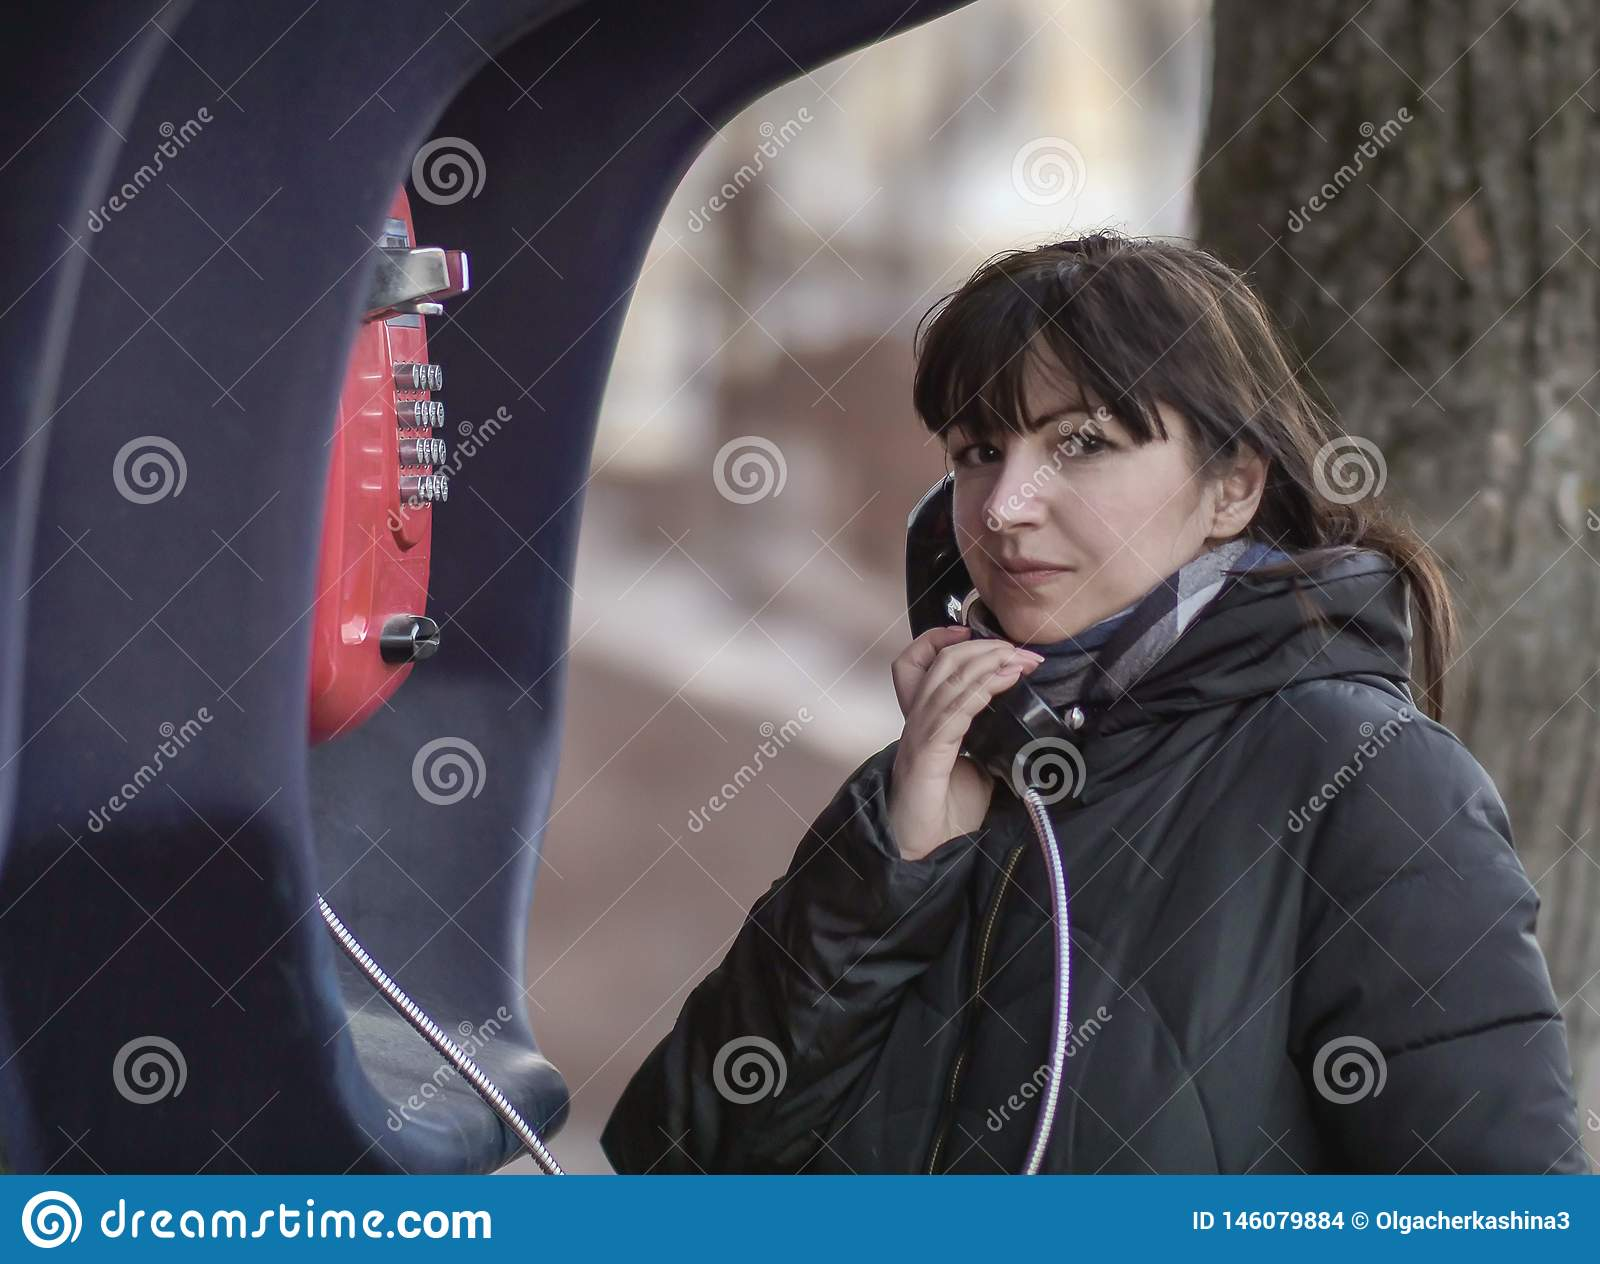 Young brunette woman calling from a red street payphone, looking directly at the camera